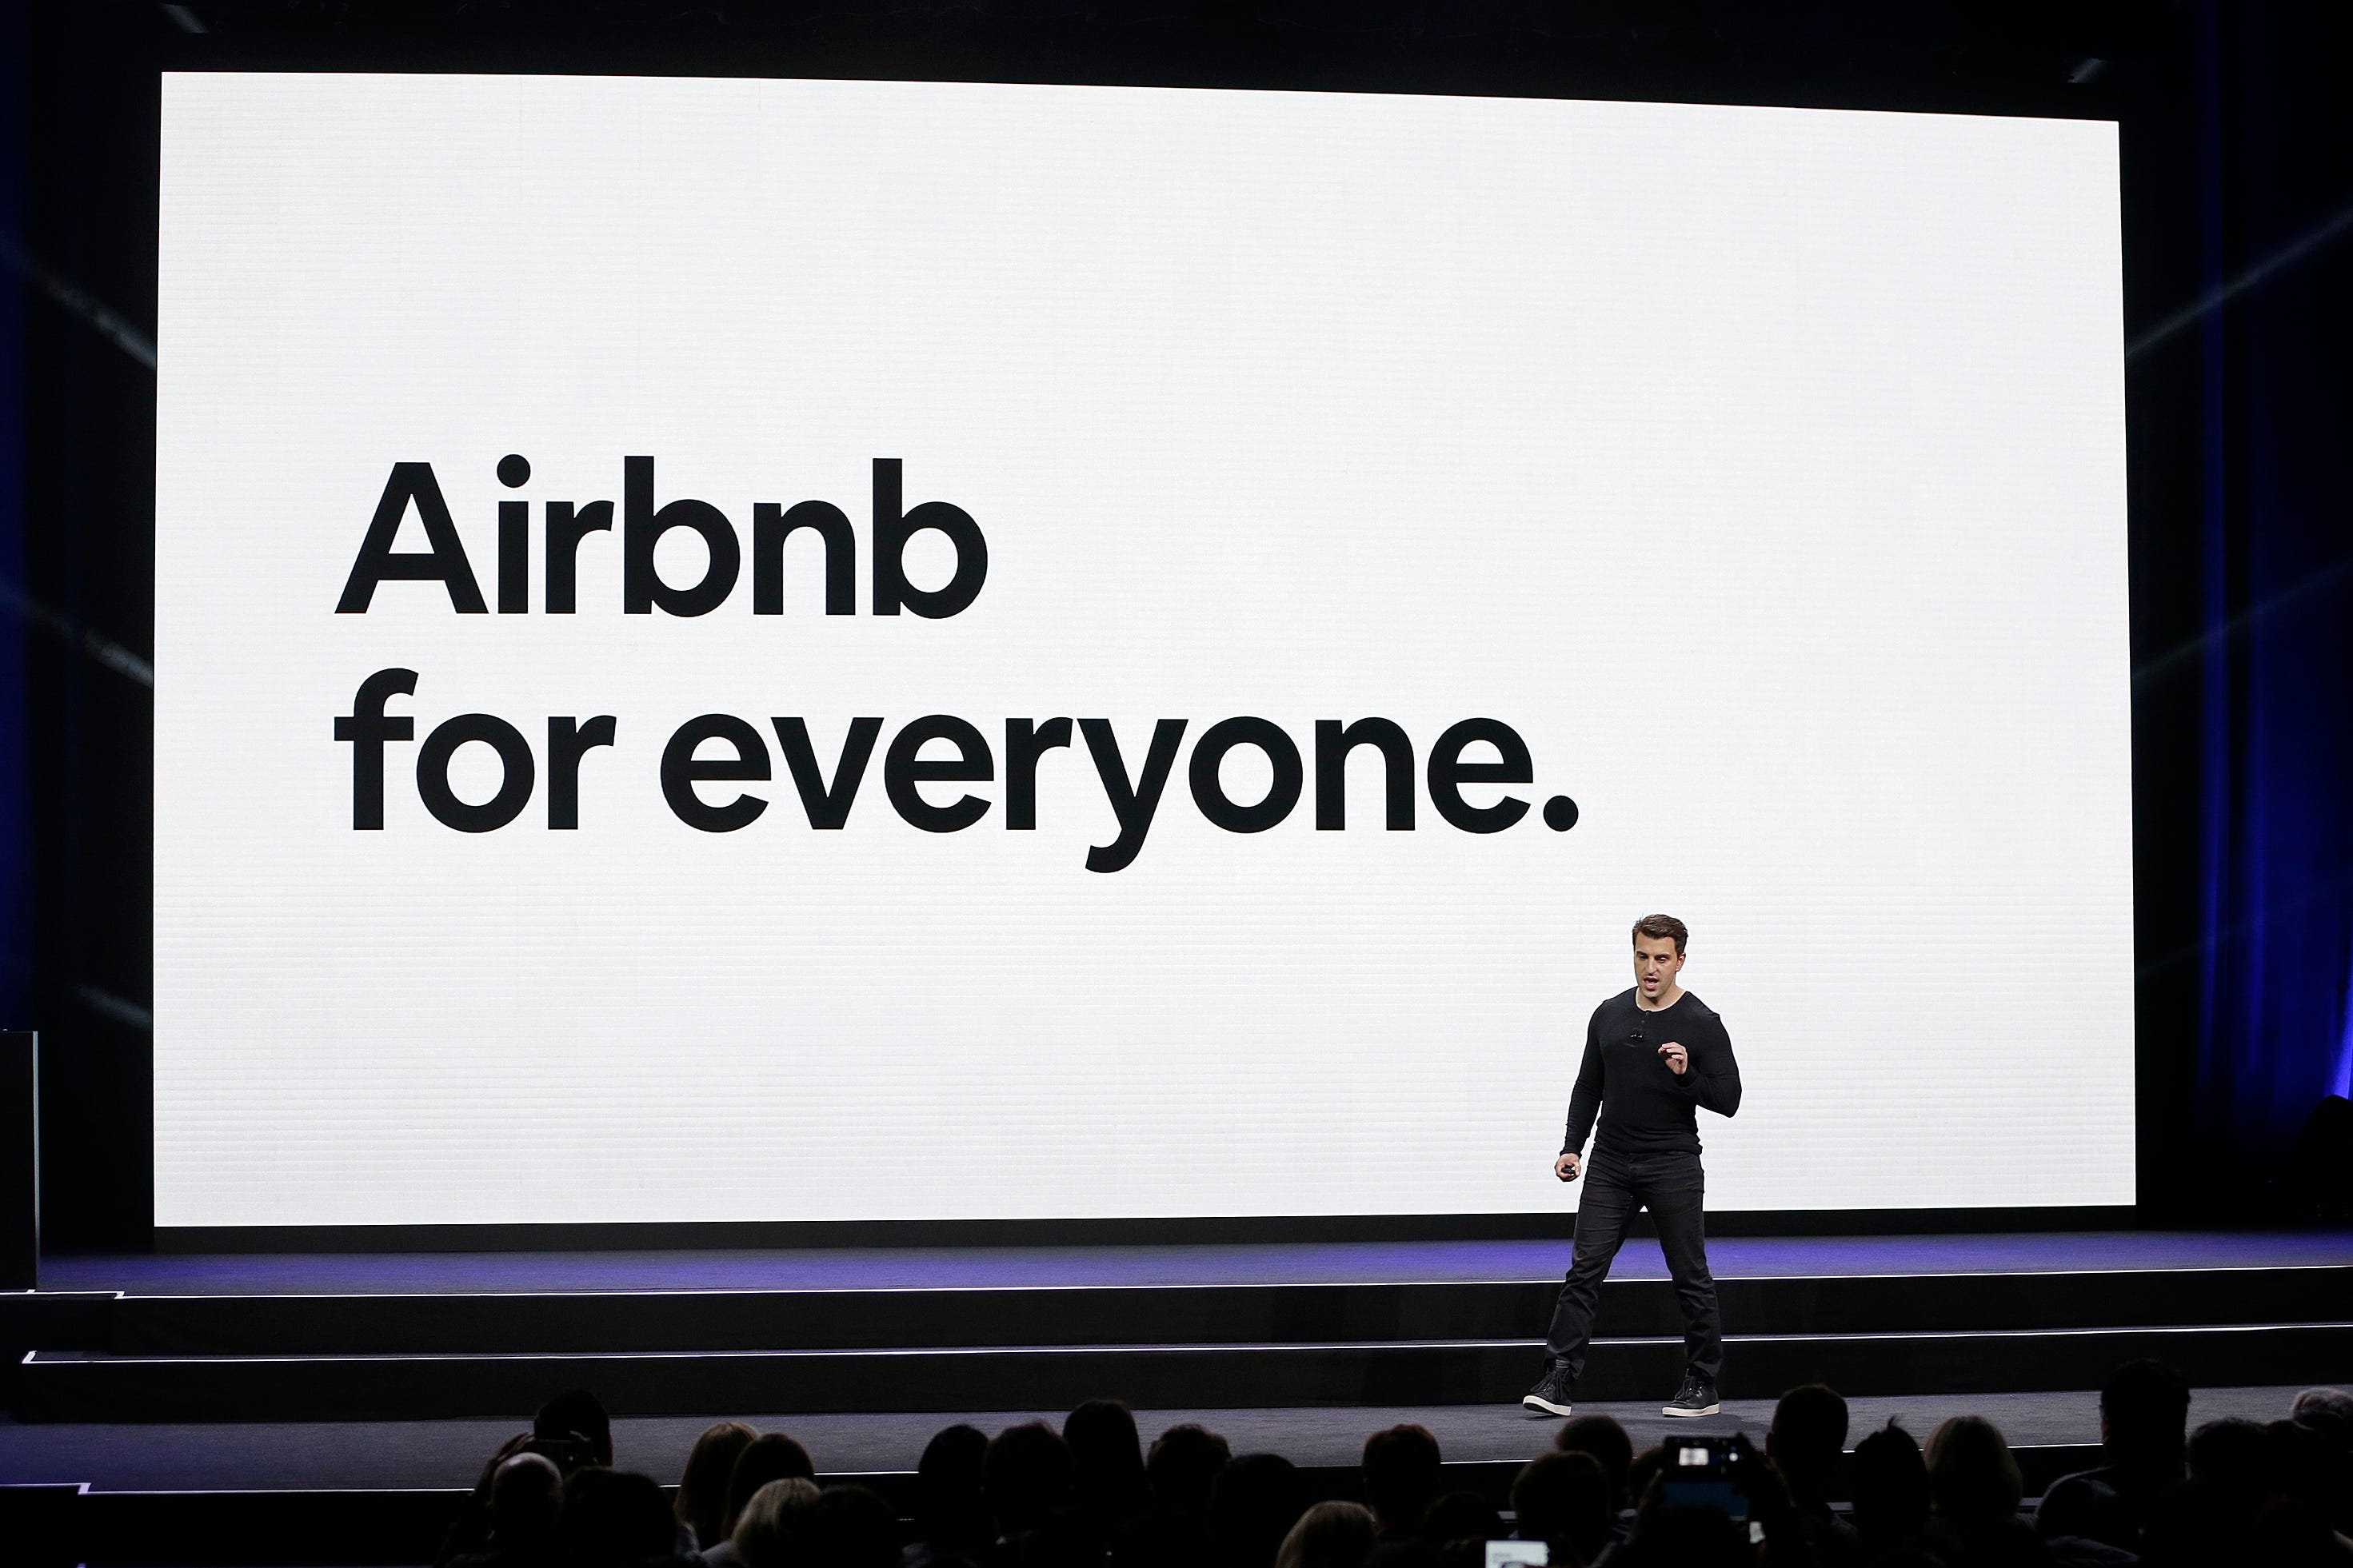 Airbnb extends party ban, occupancy limit in 'best interest of public health'